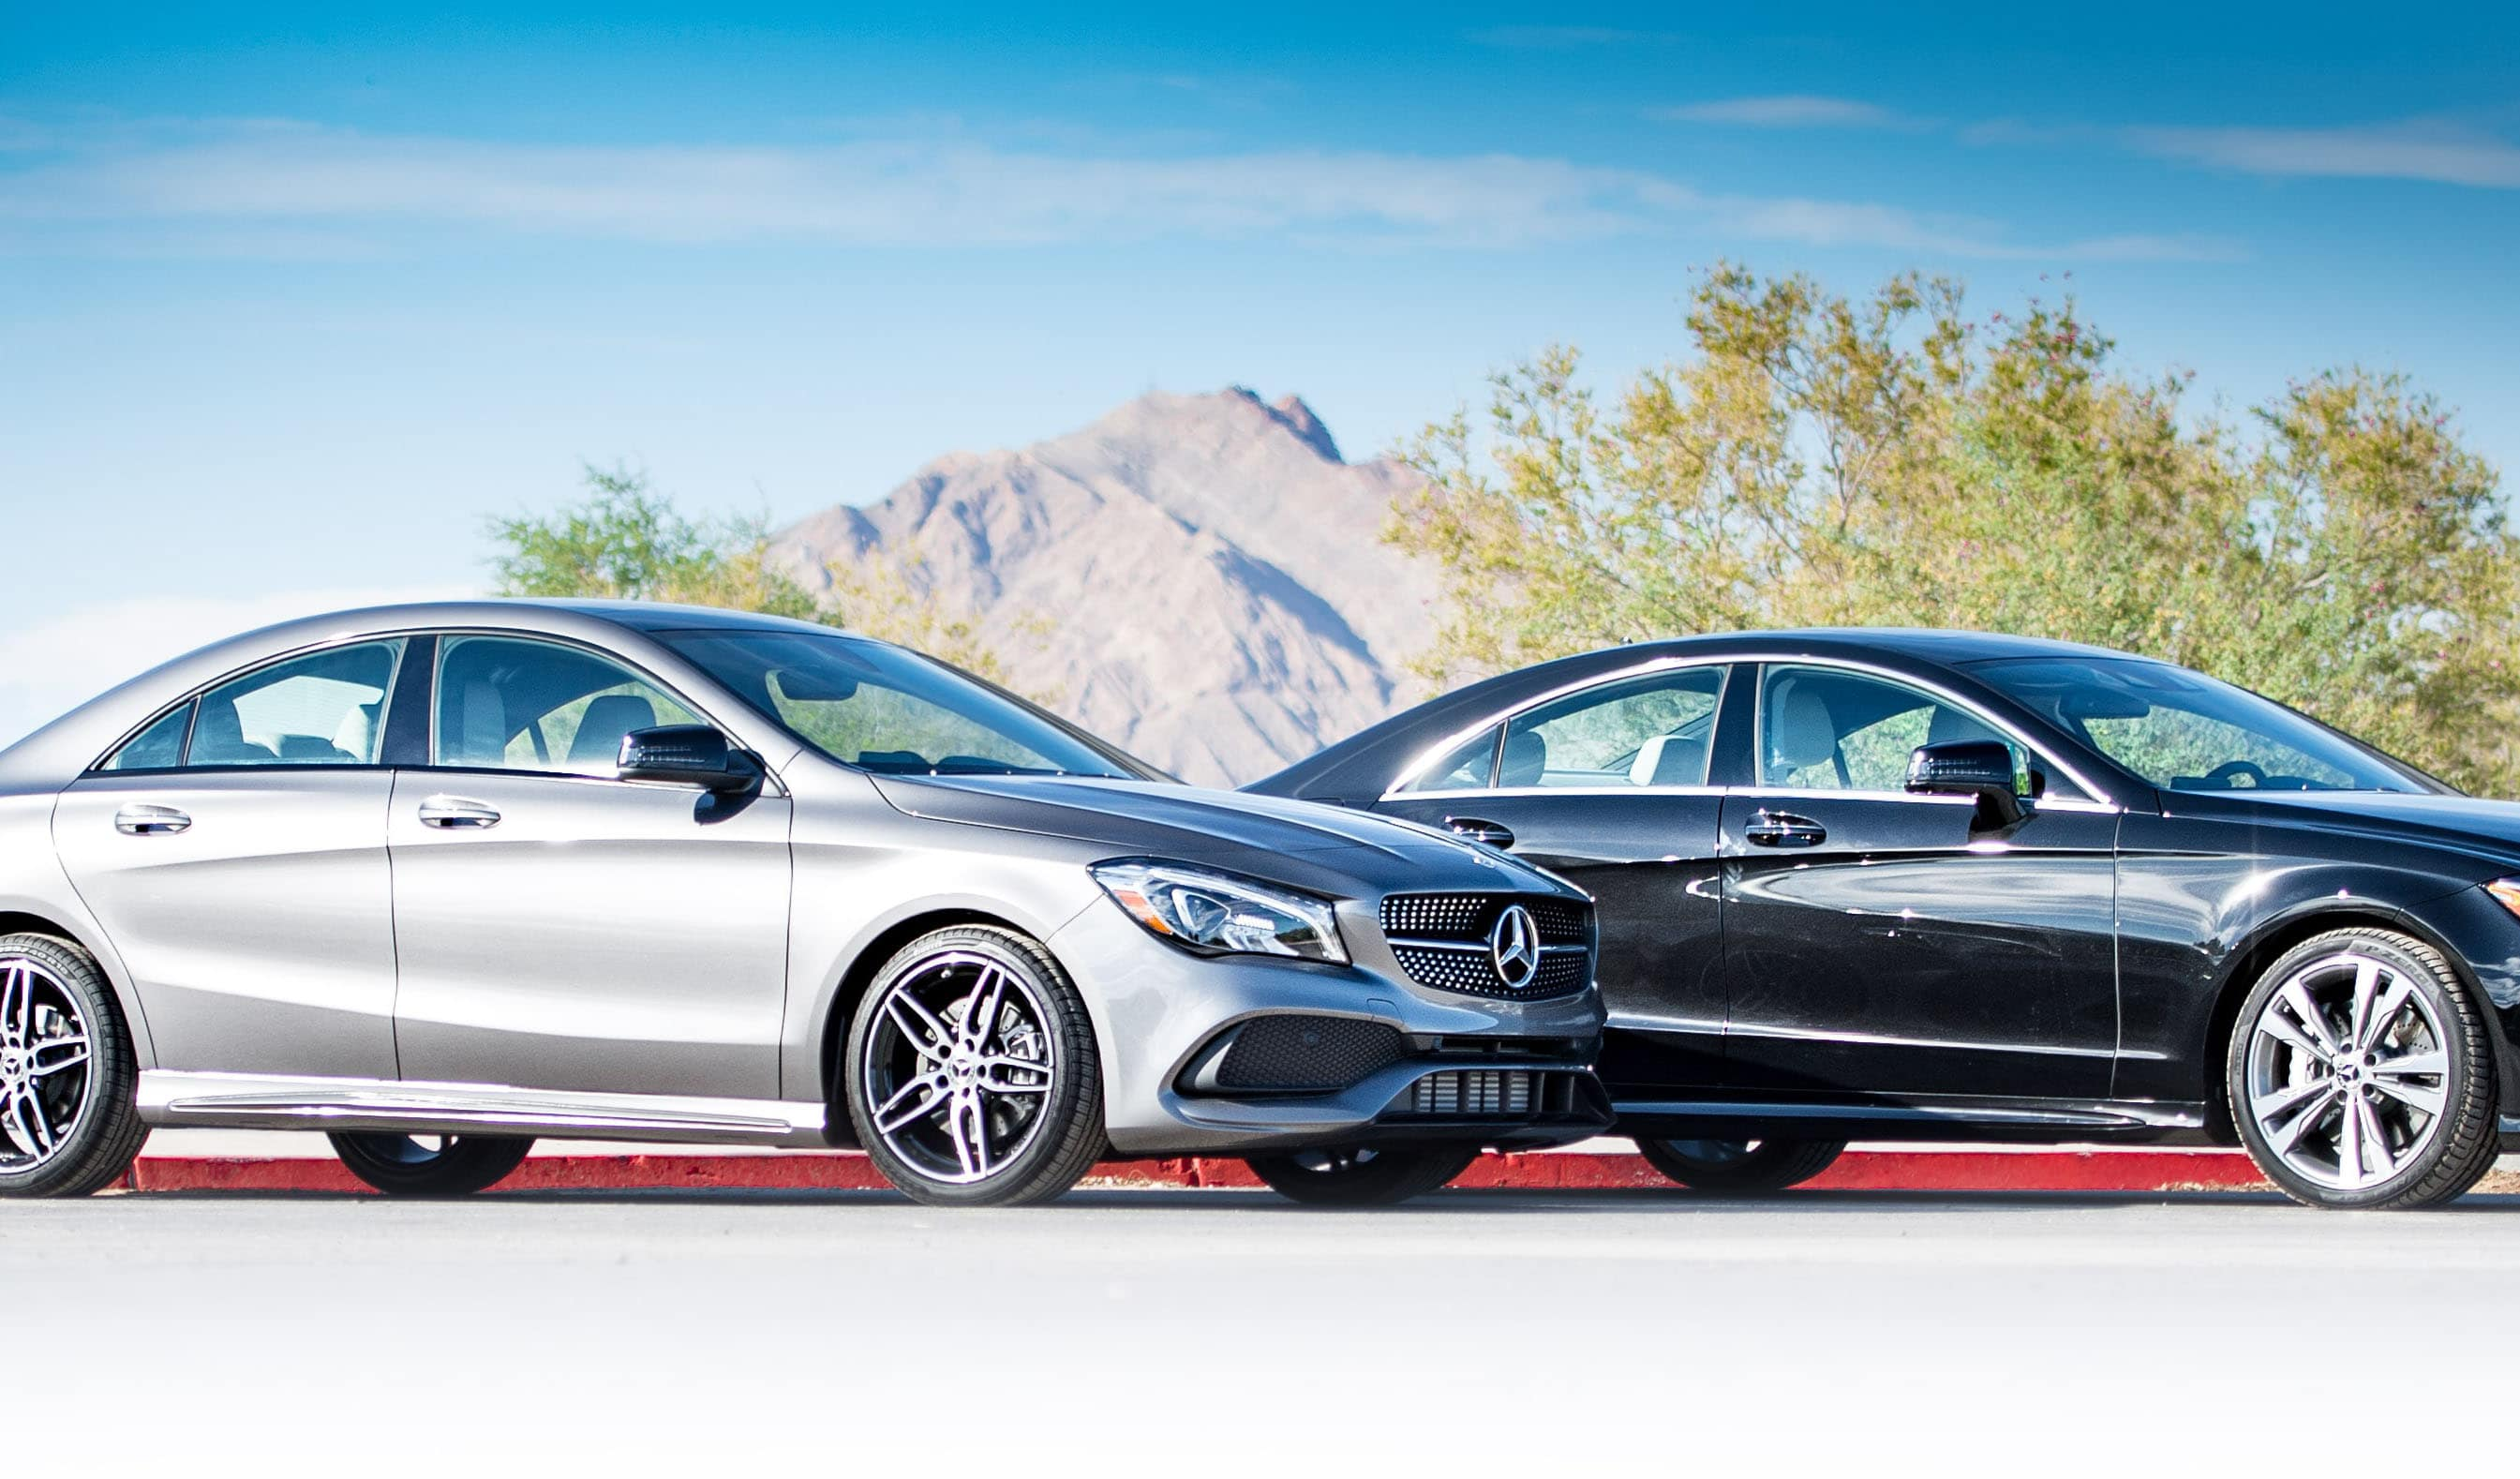 vip benefits for mercedes benz owners fletcher jones imports